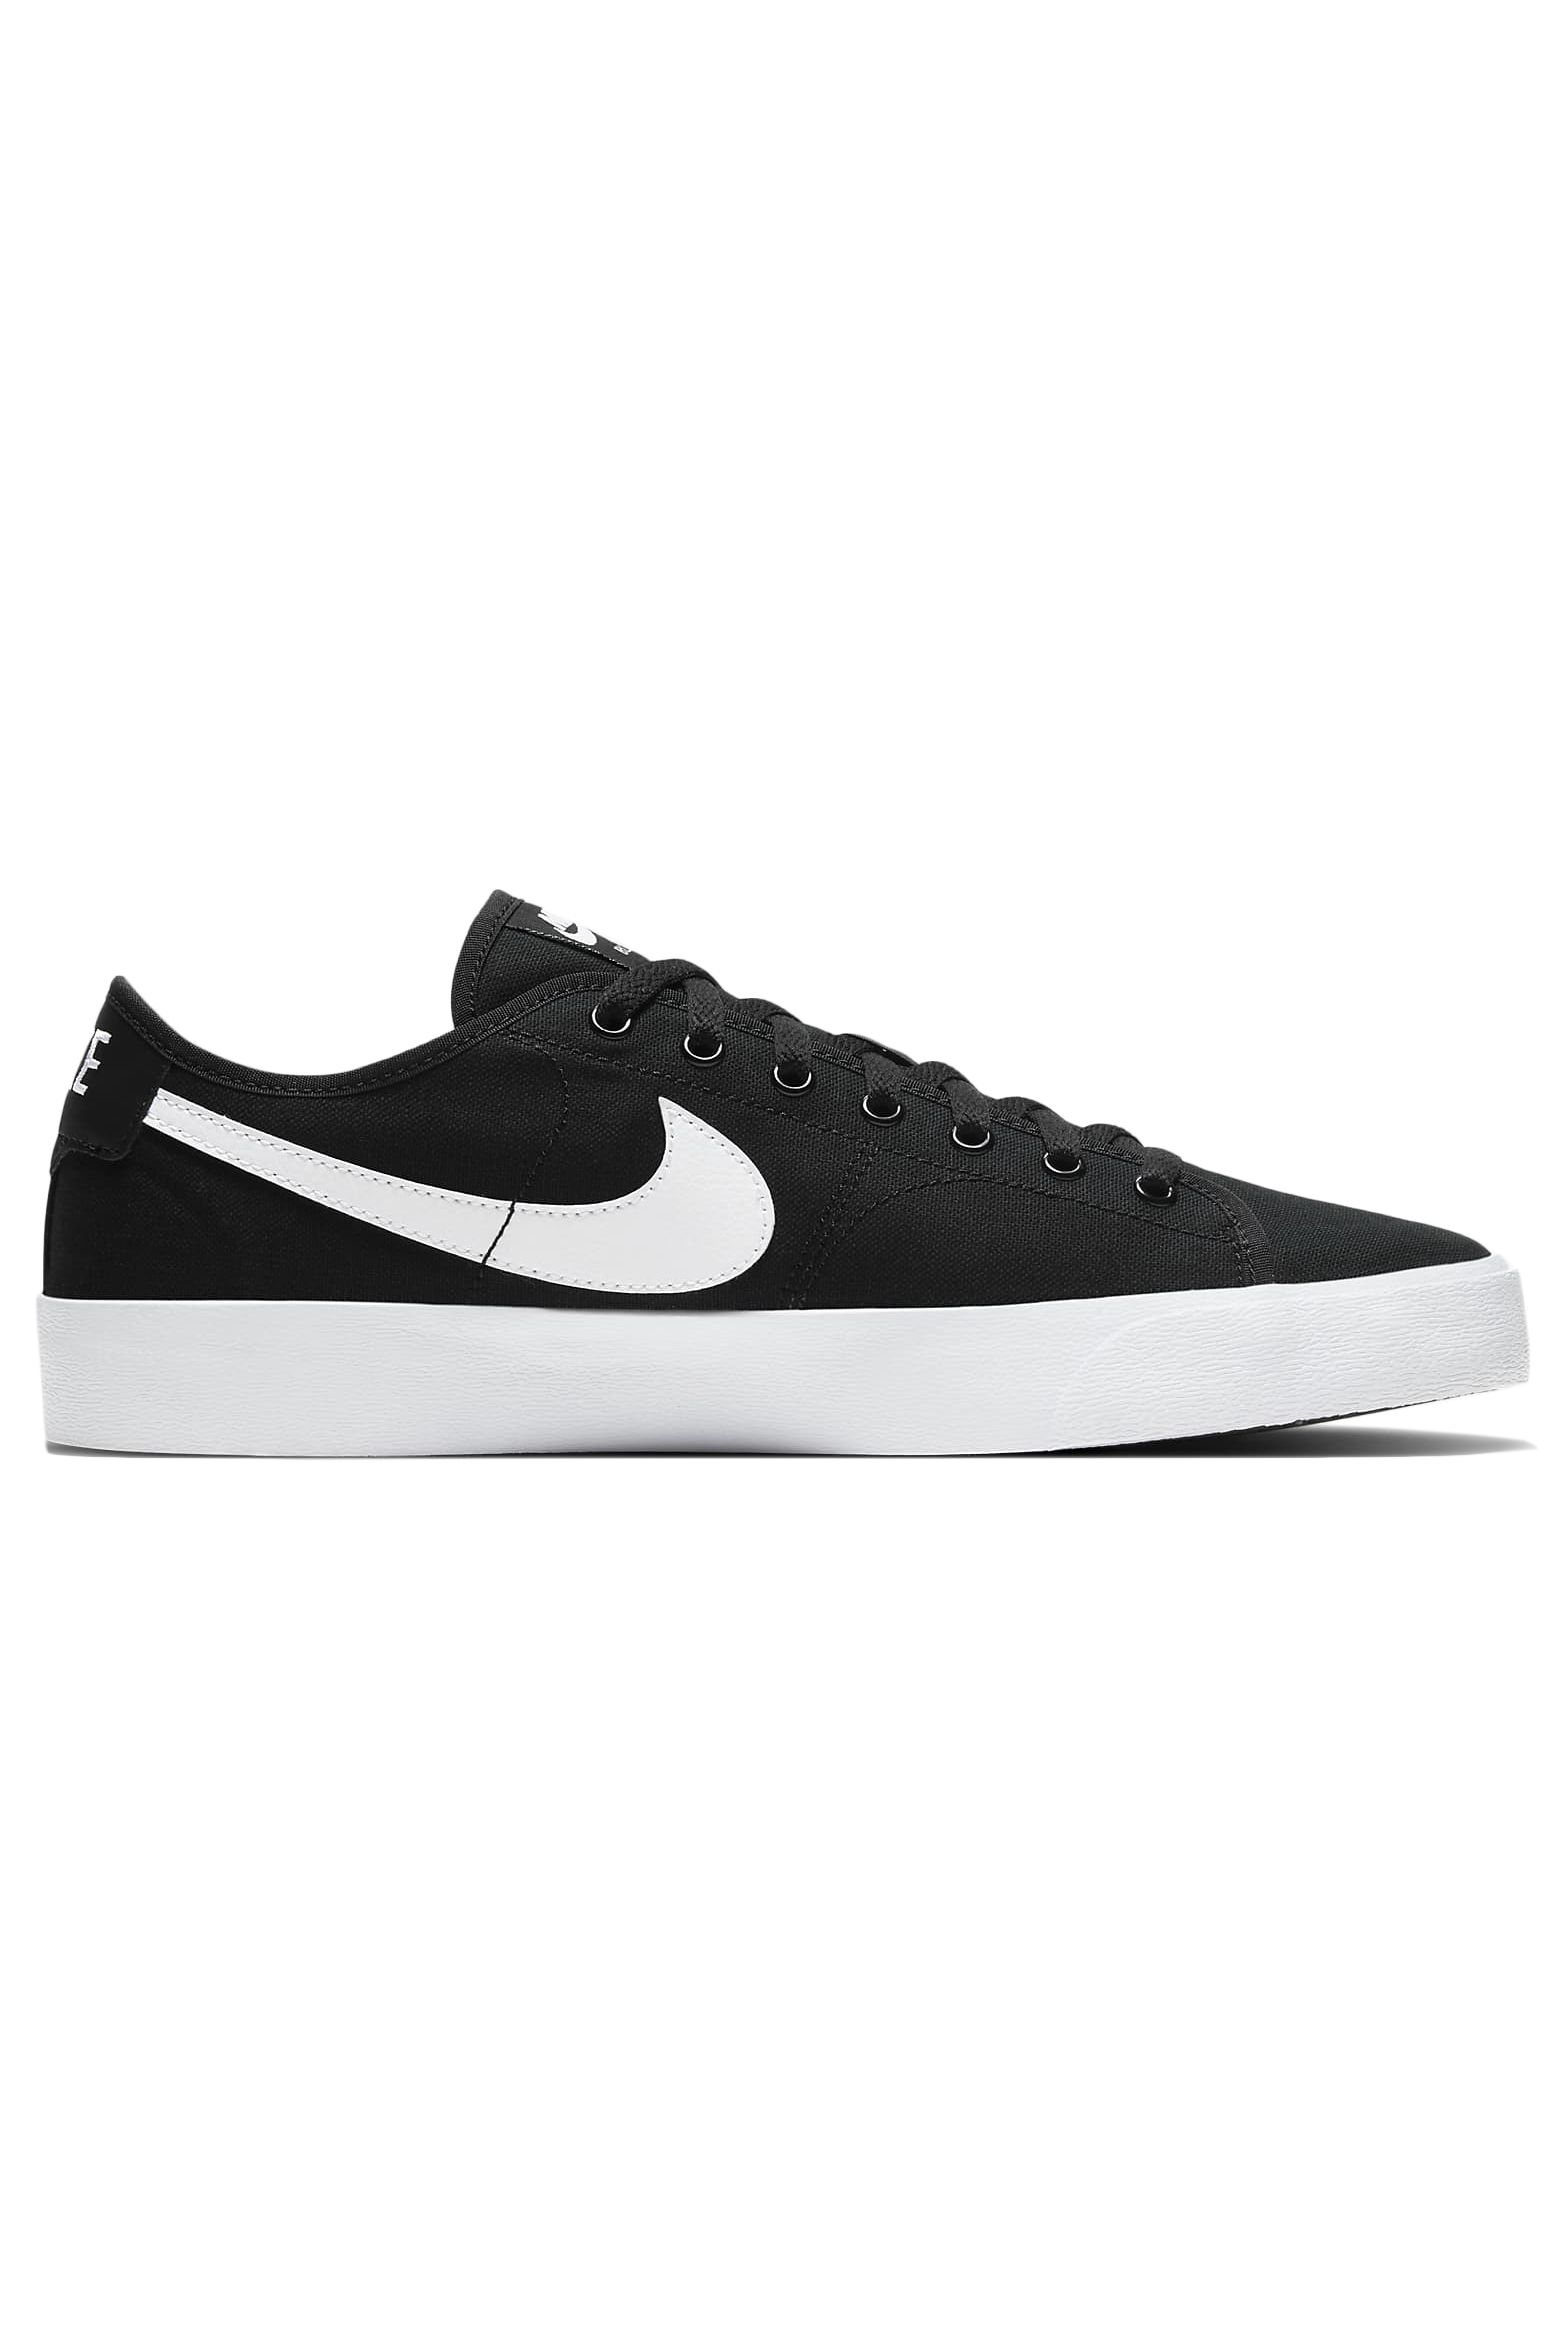 Tenis Nike Sb BLAZER COURT Black/White-Black-Gum Light Brown